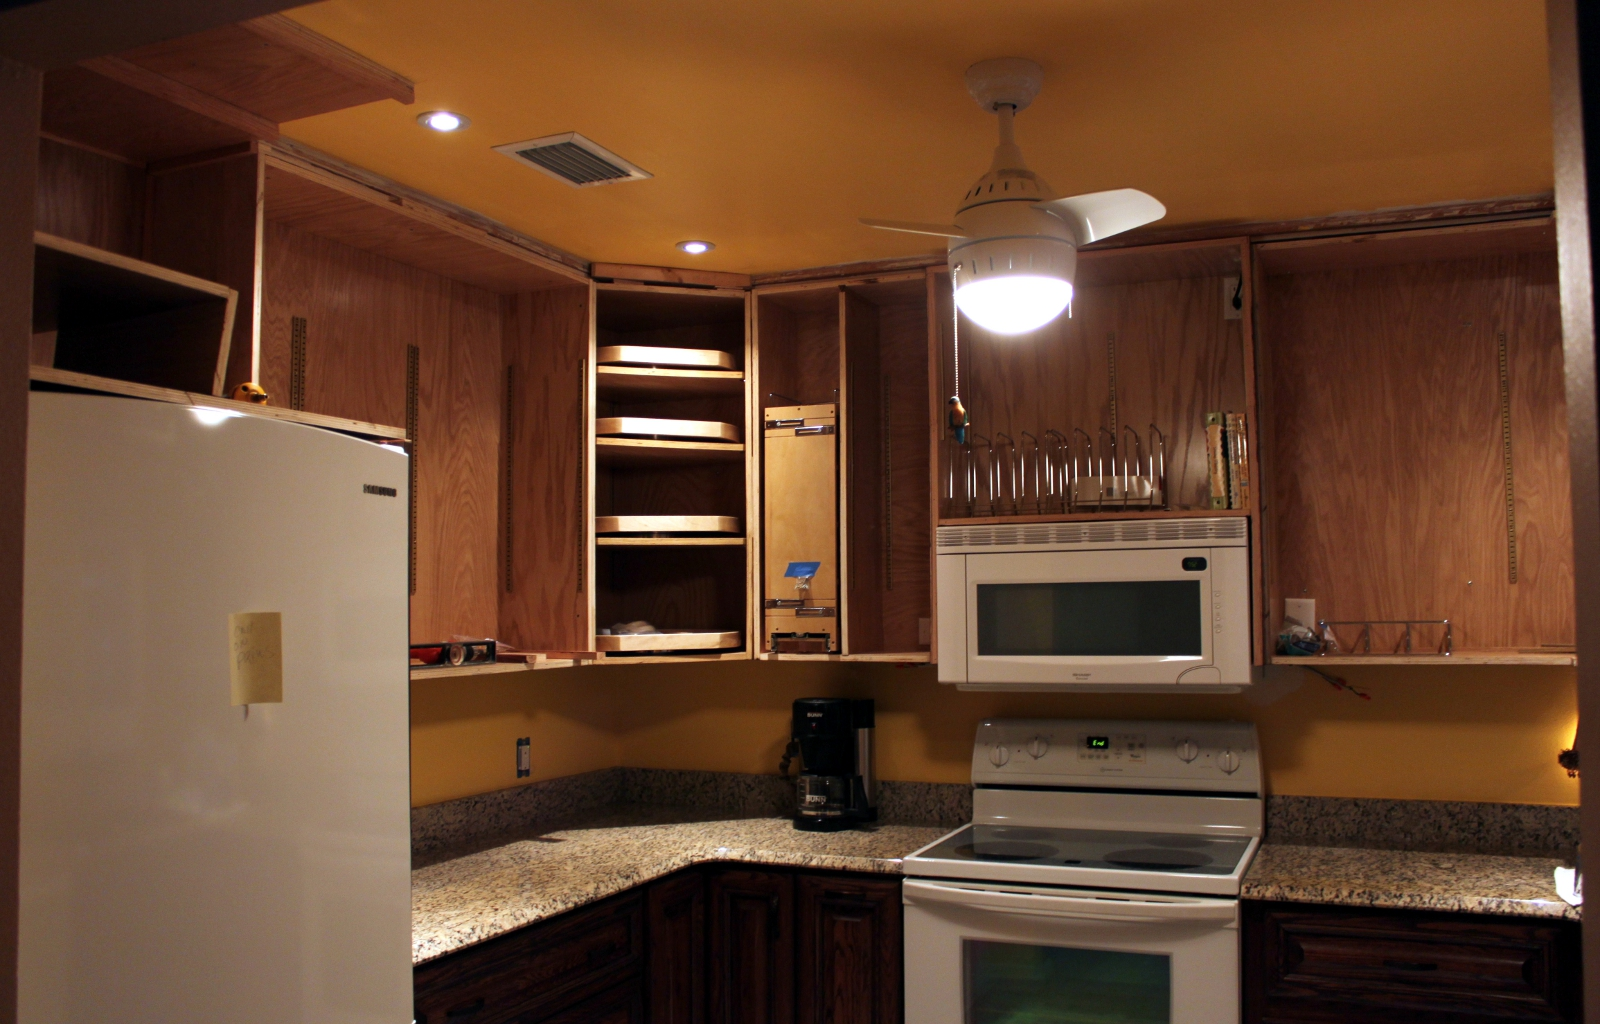 Kitchen cabinets lanailens for Adding height to kitchen cabinets